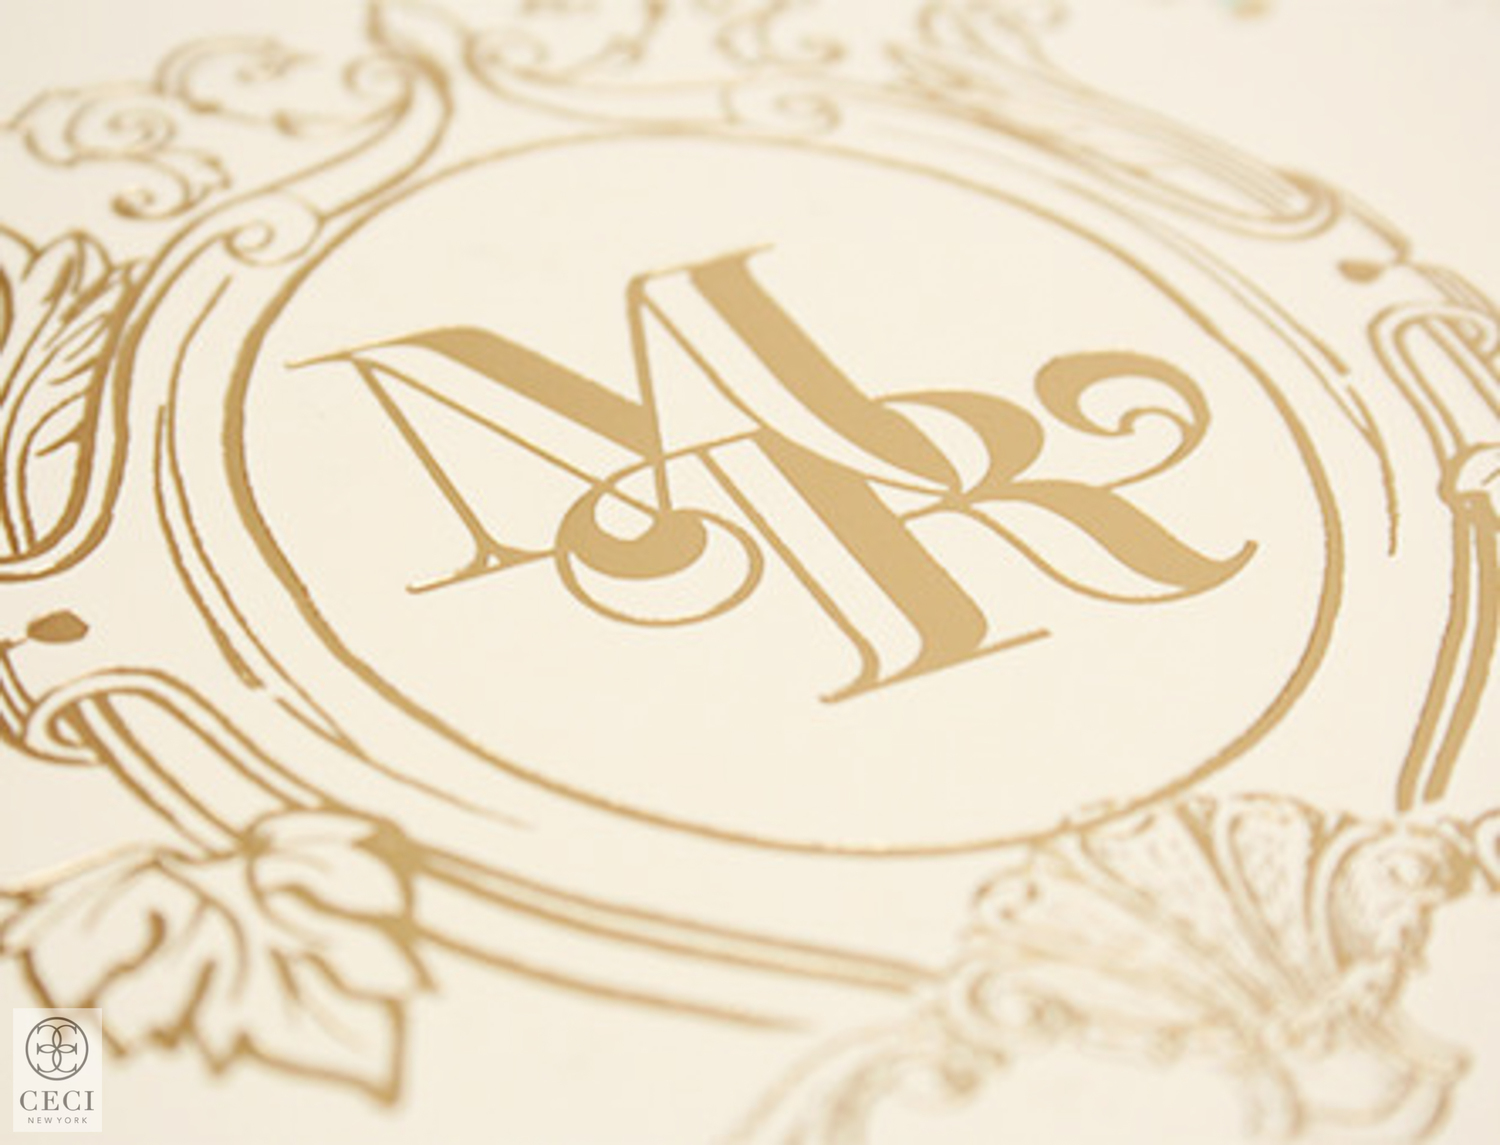 Ceci_New_York_Wedding_Lake_Como_Italy_Luxury_Style_Custom_Invitation-10.jpg